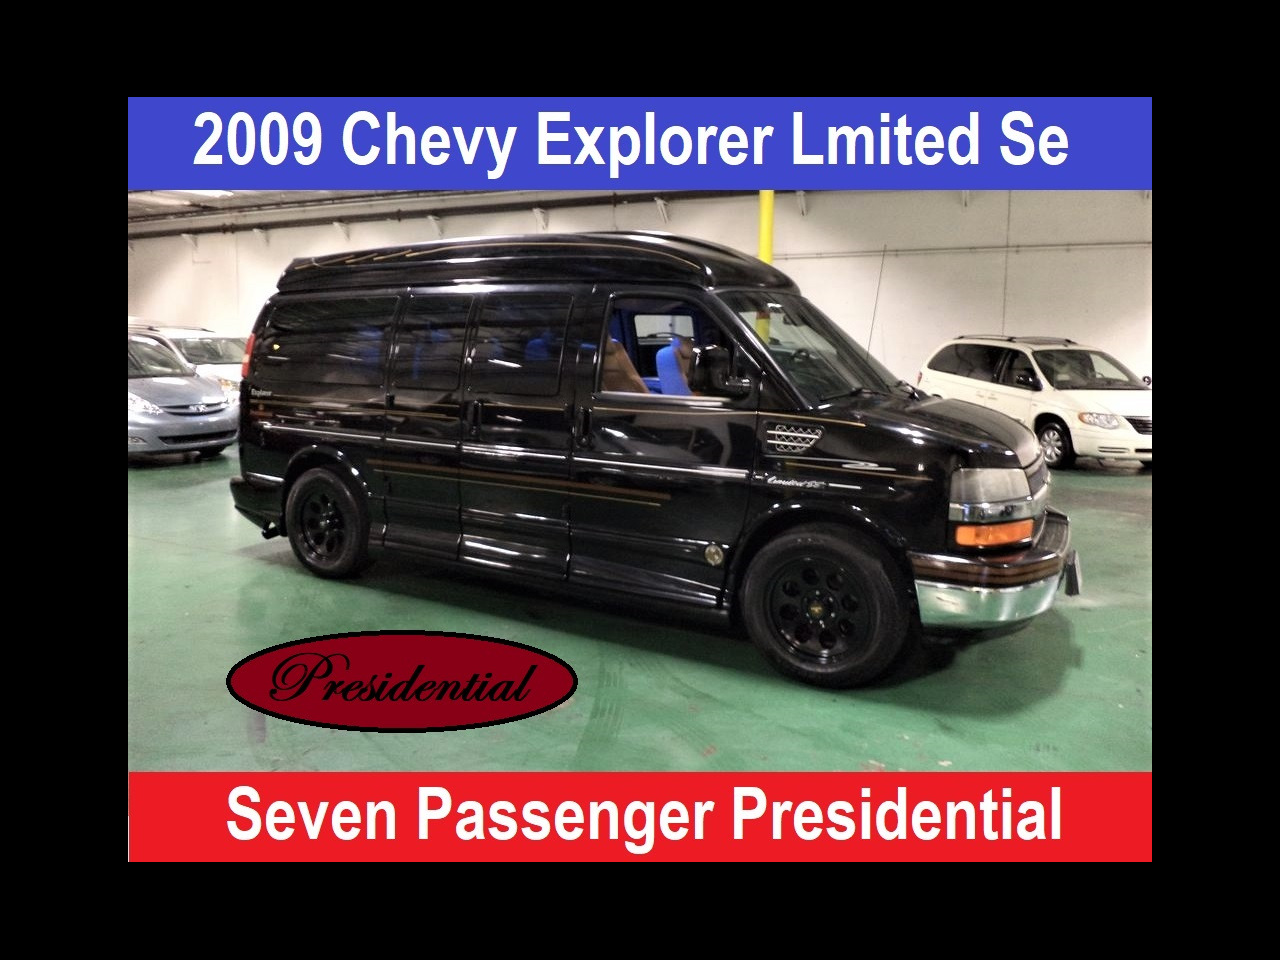 2009 Chevrolet Express Presidential Explorer Limited Se Conversion Van